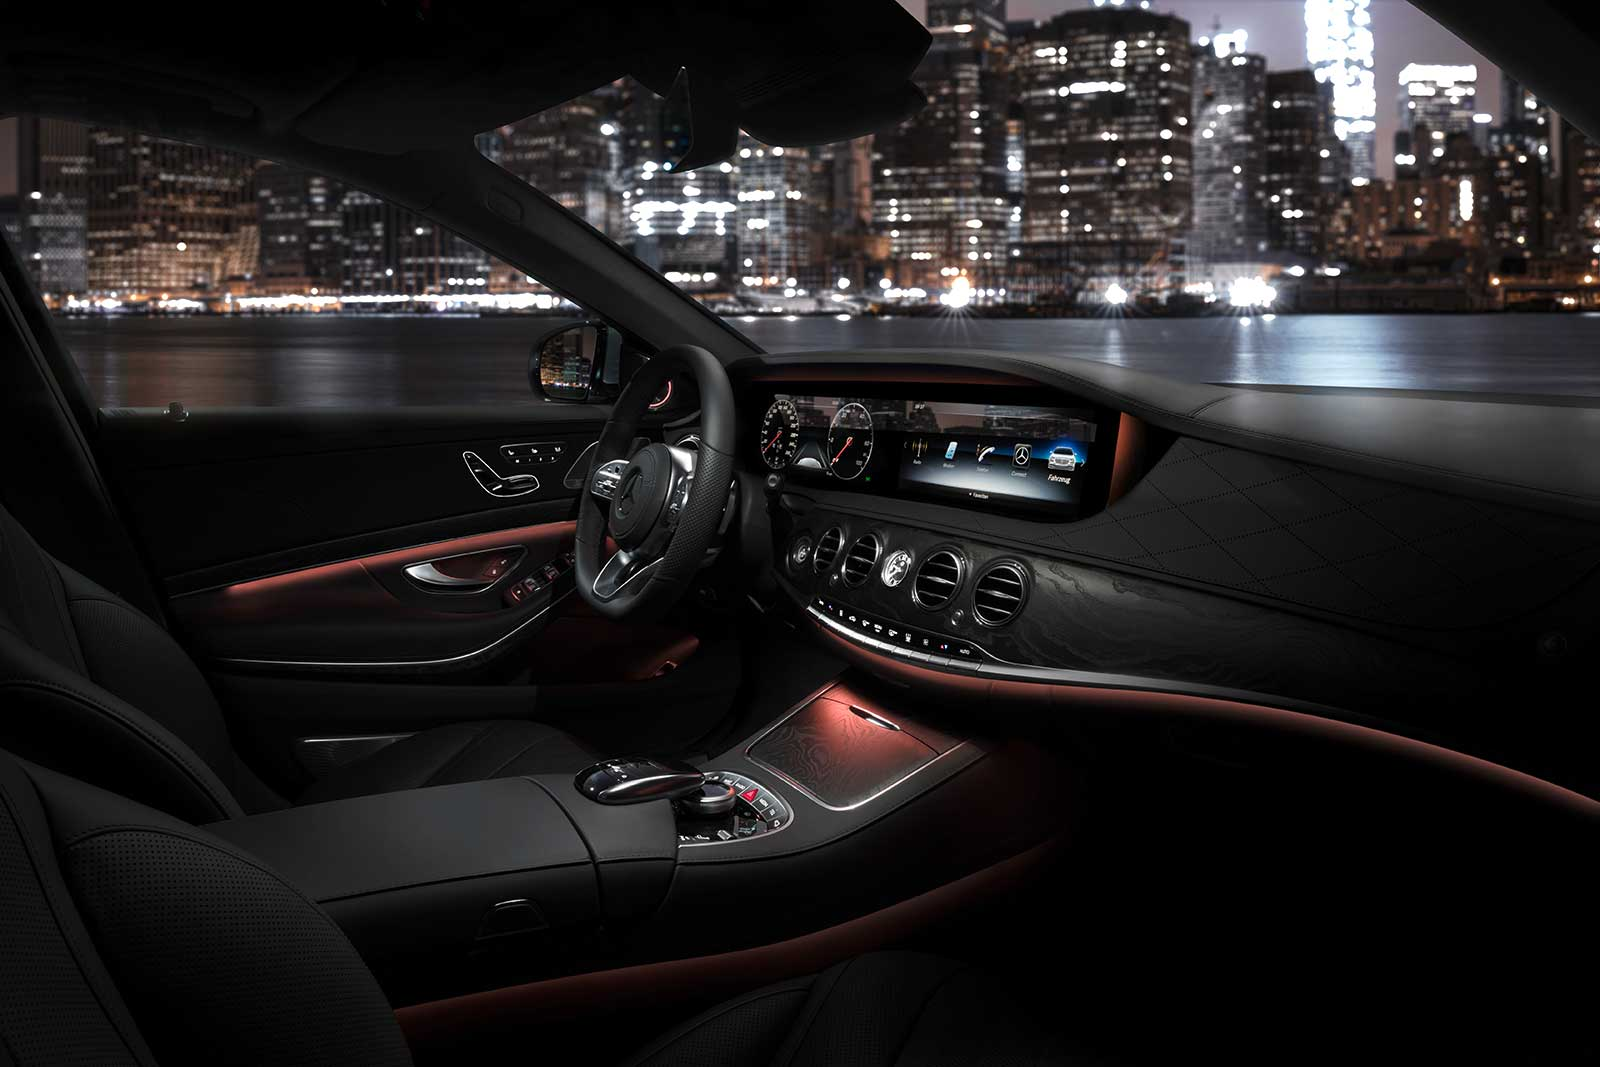 2017 Mercedes S Class Interior Lighting Www Indiepedia Org